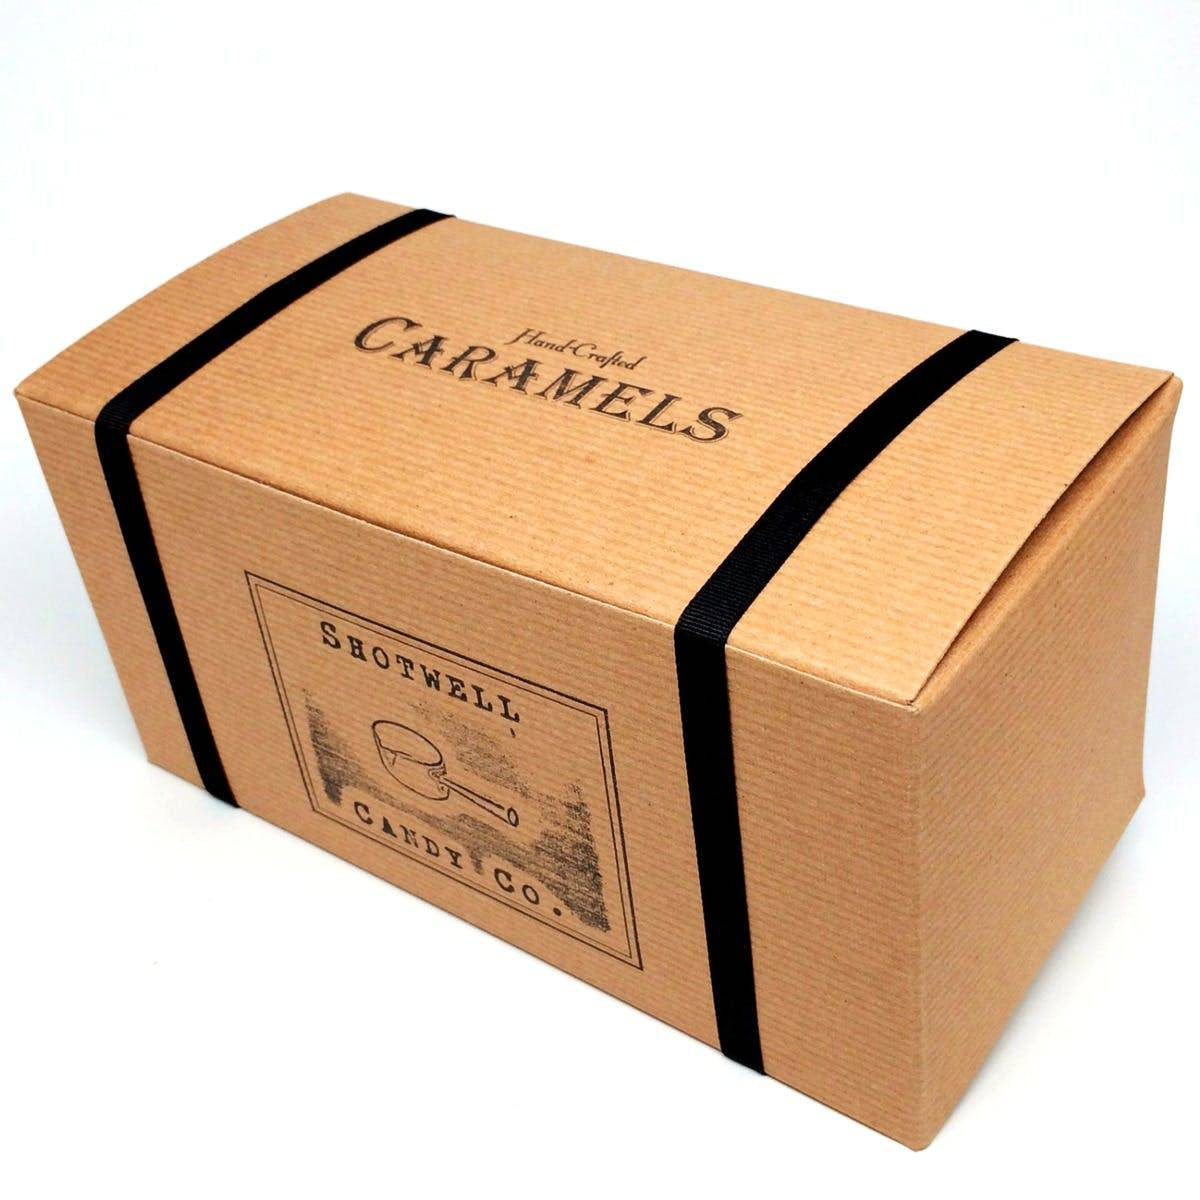 Candy Shotwell Candy - Shotwell Signature Caramels Gift Set - 6 Pack